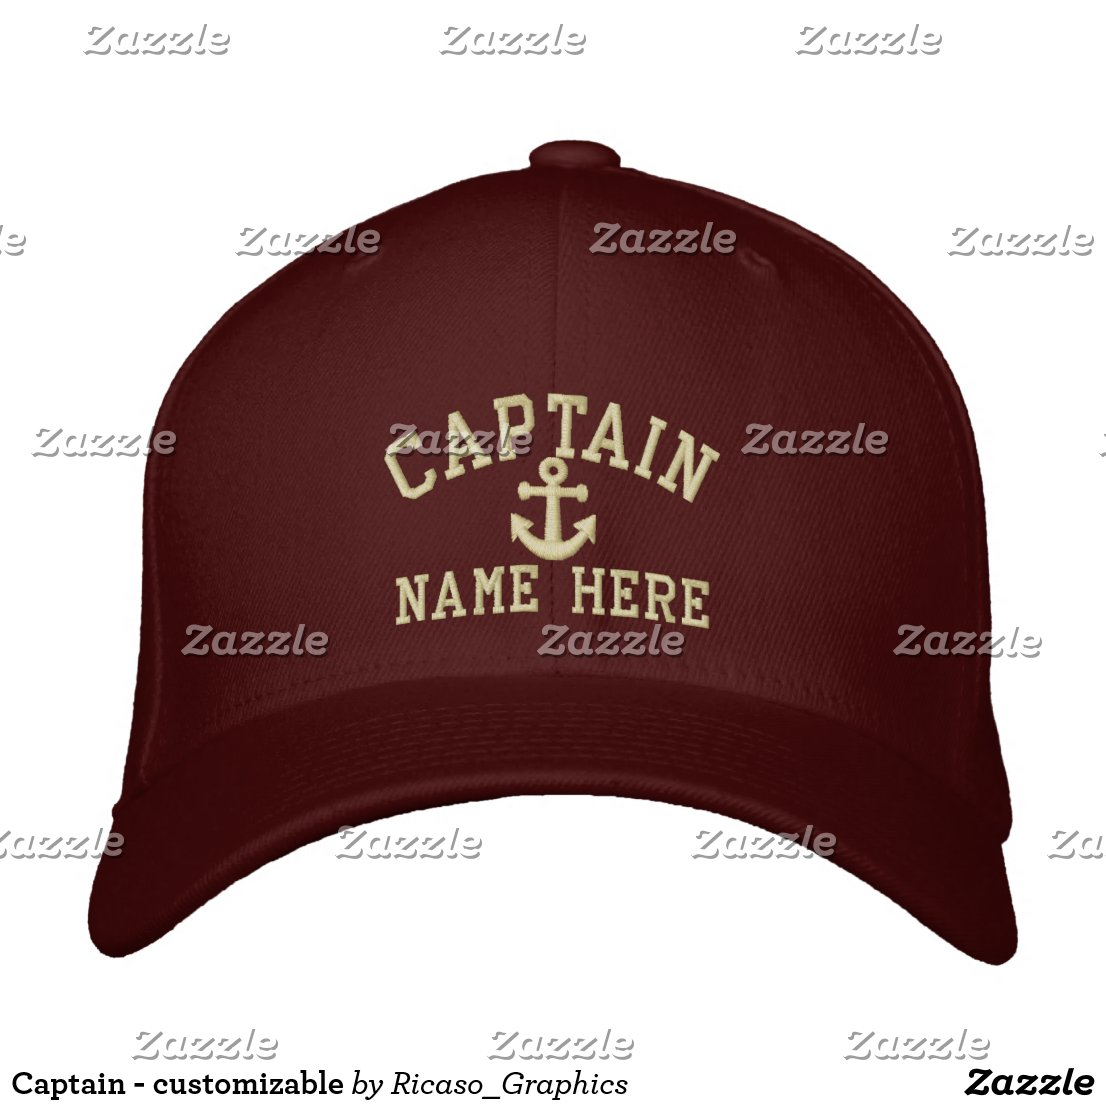 Captain - customizable